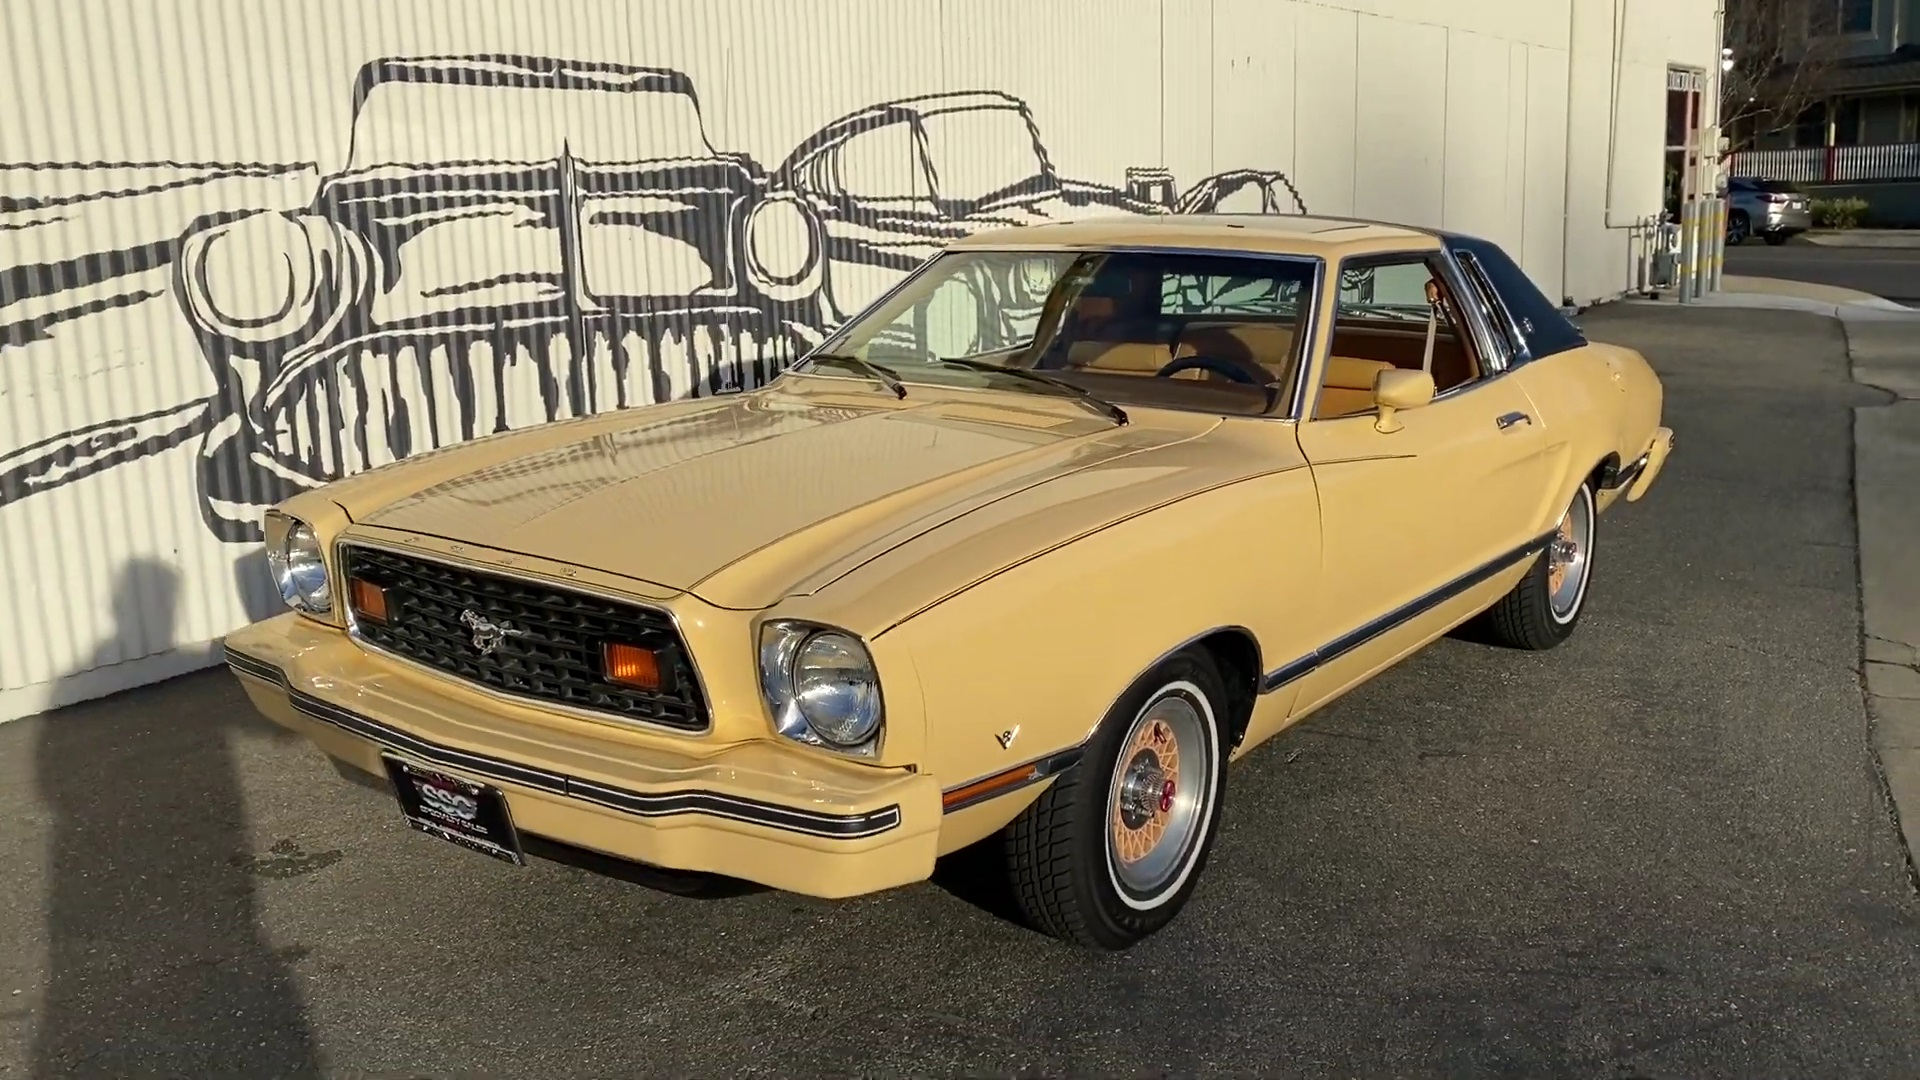 Video: 1977 Ford Mustang Ghia Quick Walkaround